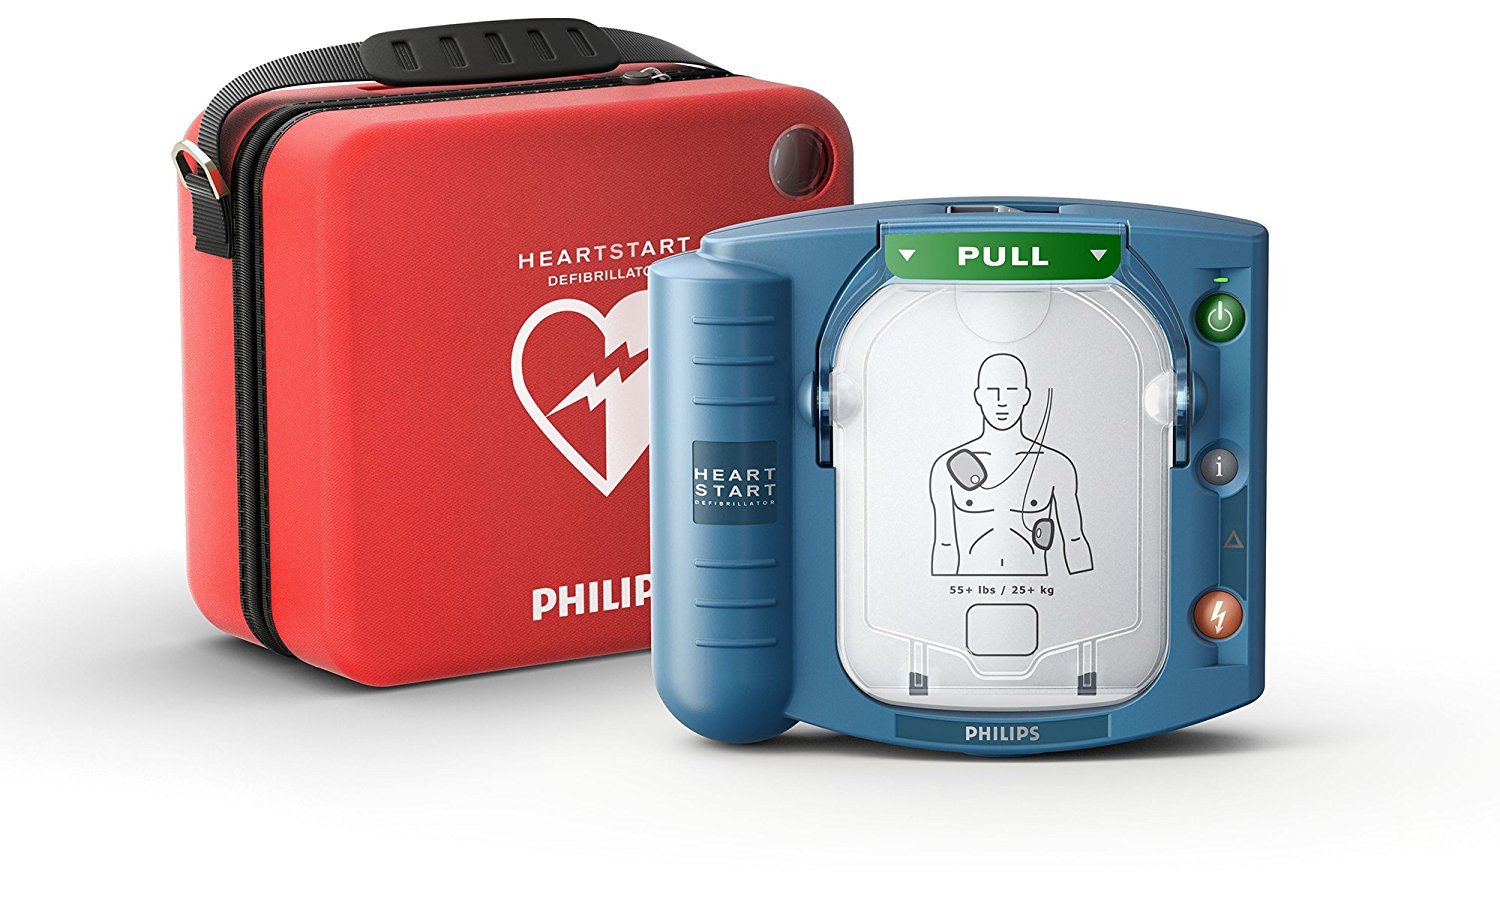 Top 5 Best Home & Office Defibrillator AED in 2020 Reviews